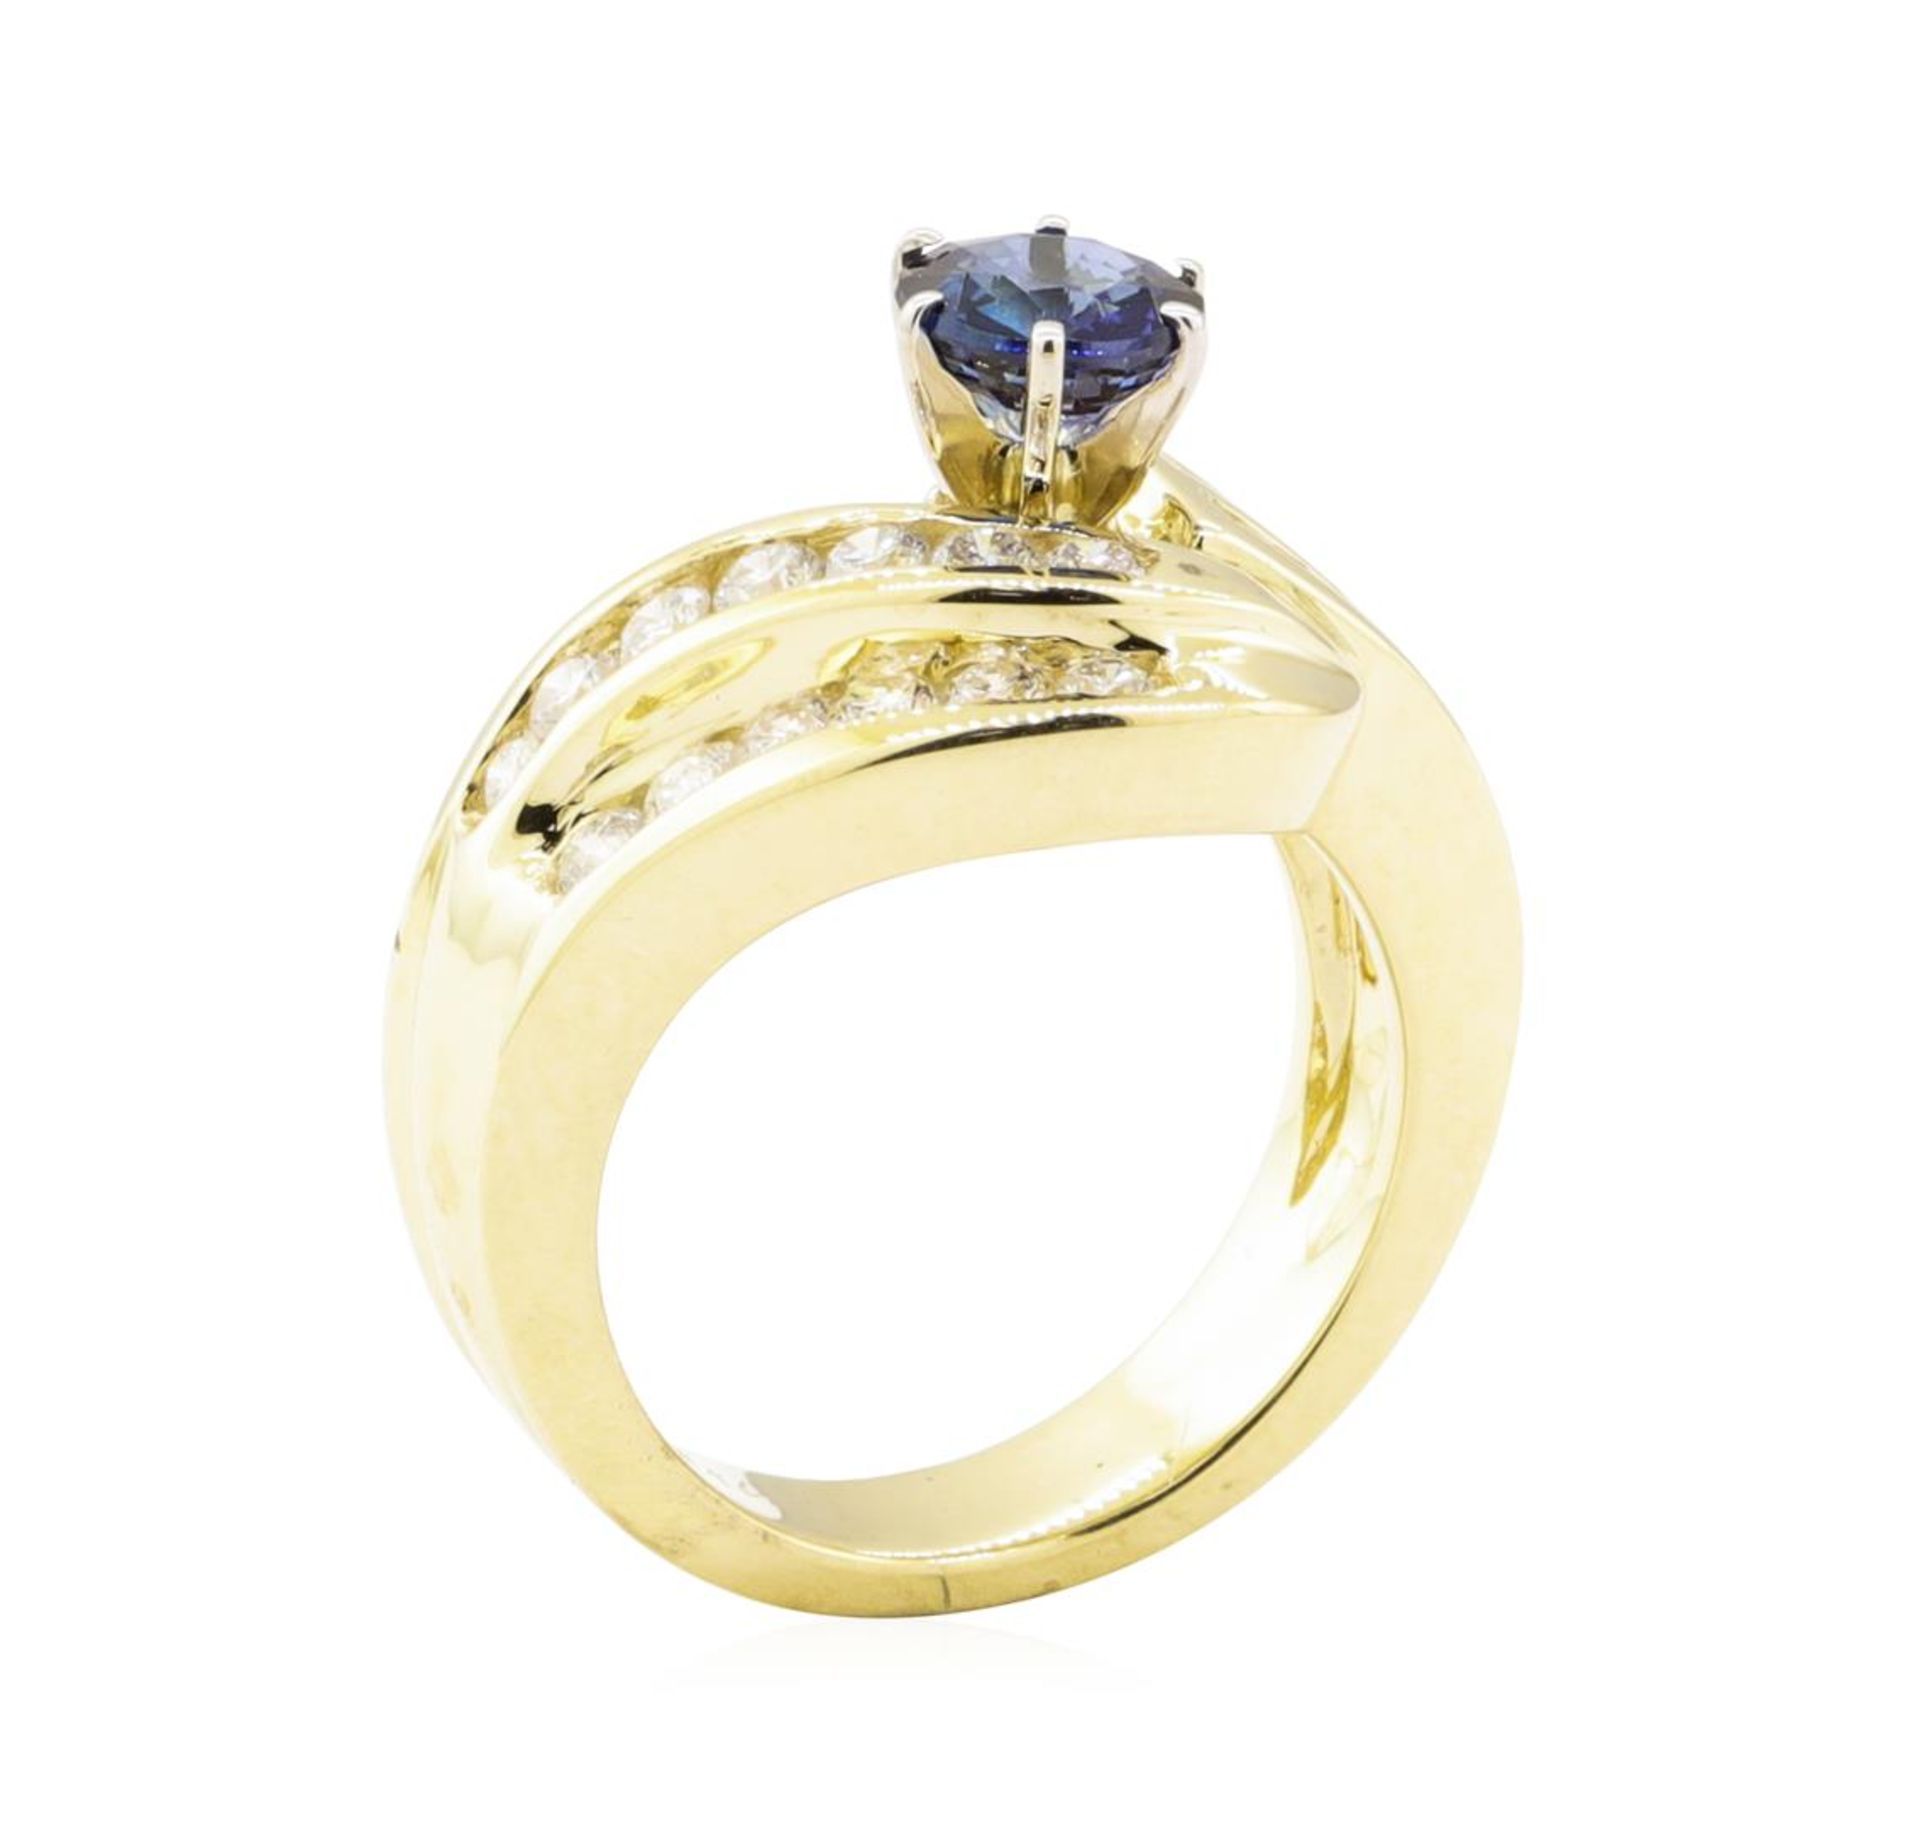 1.78 ctw Blue Sapphire And Diamond Ring - 14KT Yellow Gold - Image 4 of 5